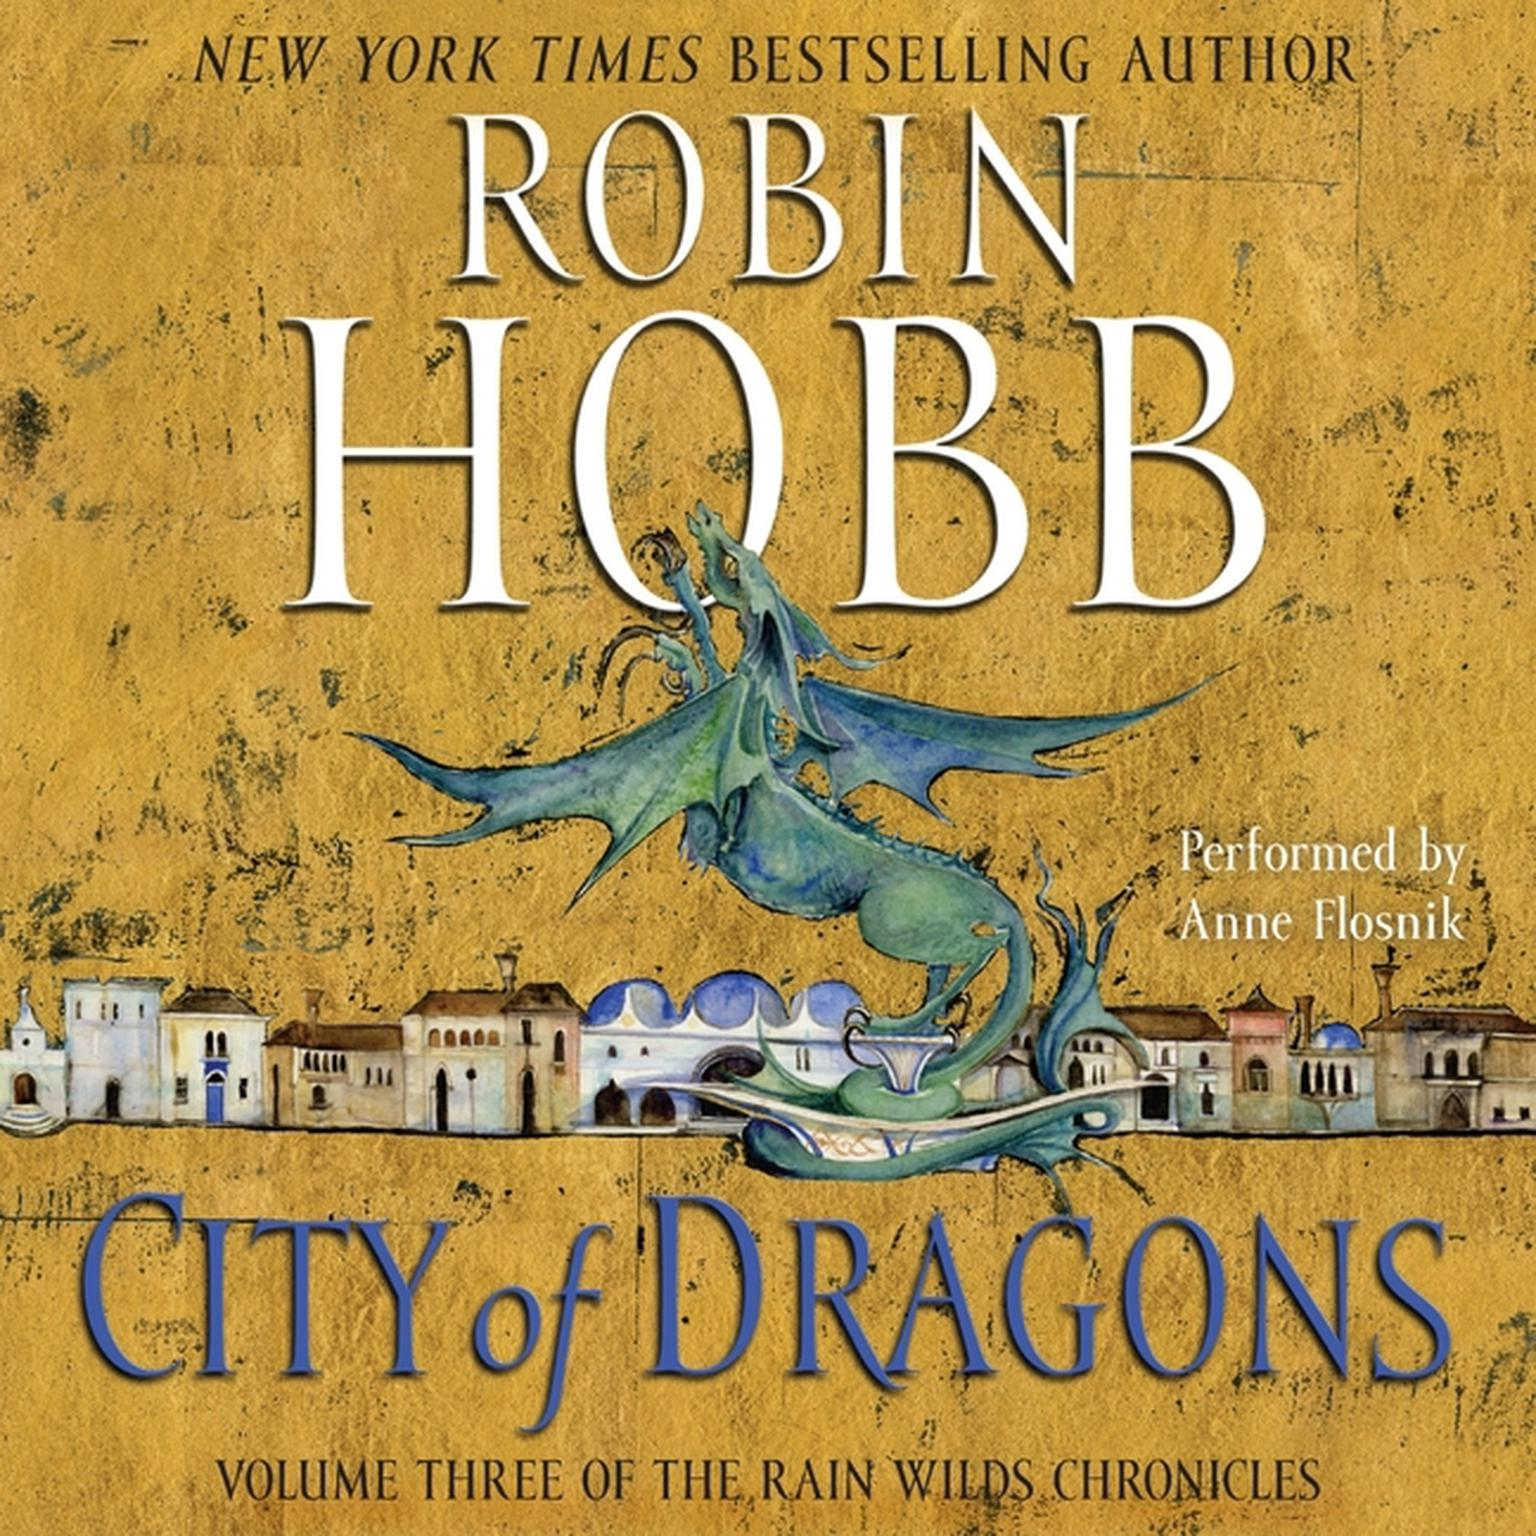 Printable City of Dragons: Volume Three of the Rain Wilds Chronicles Audiobook Cover Art